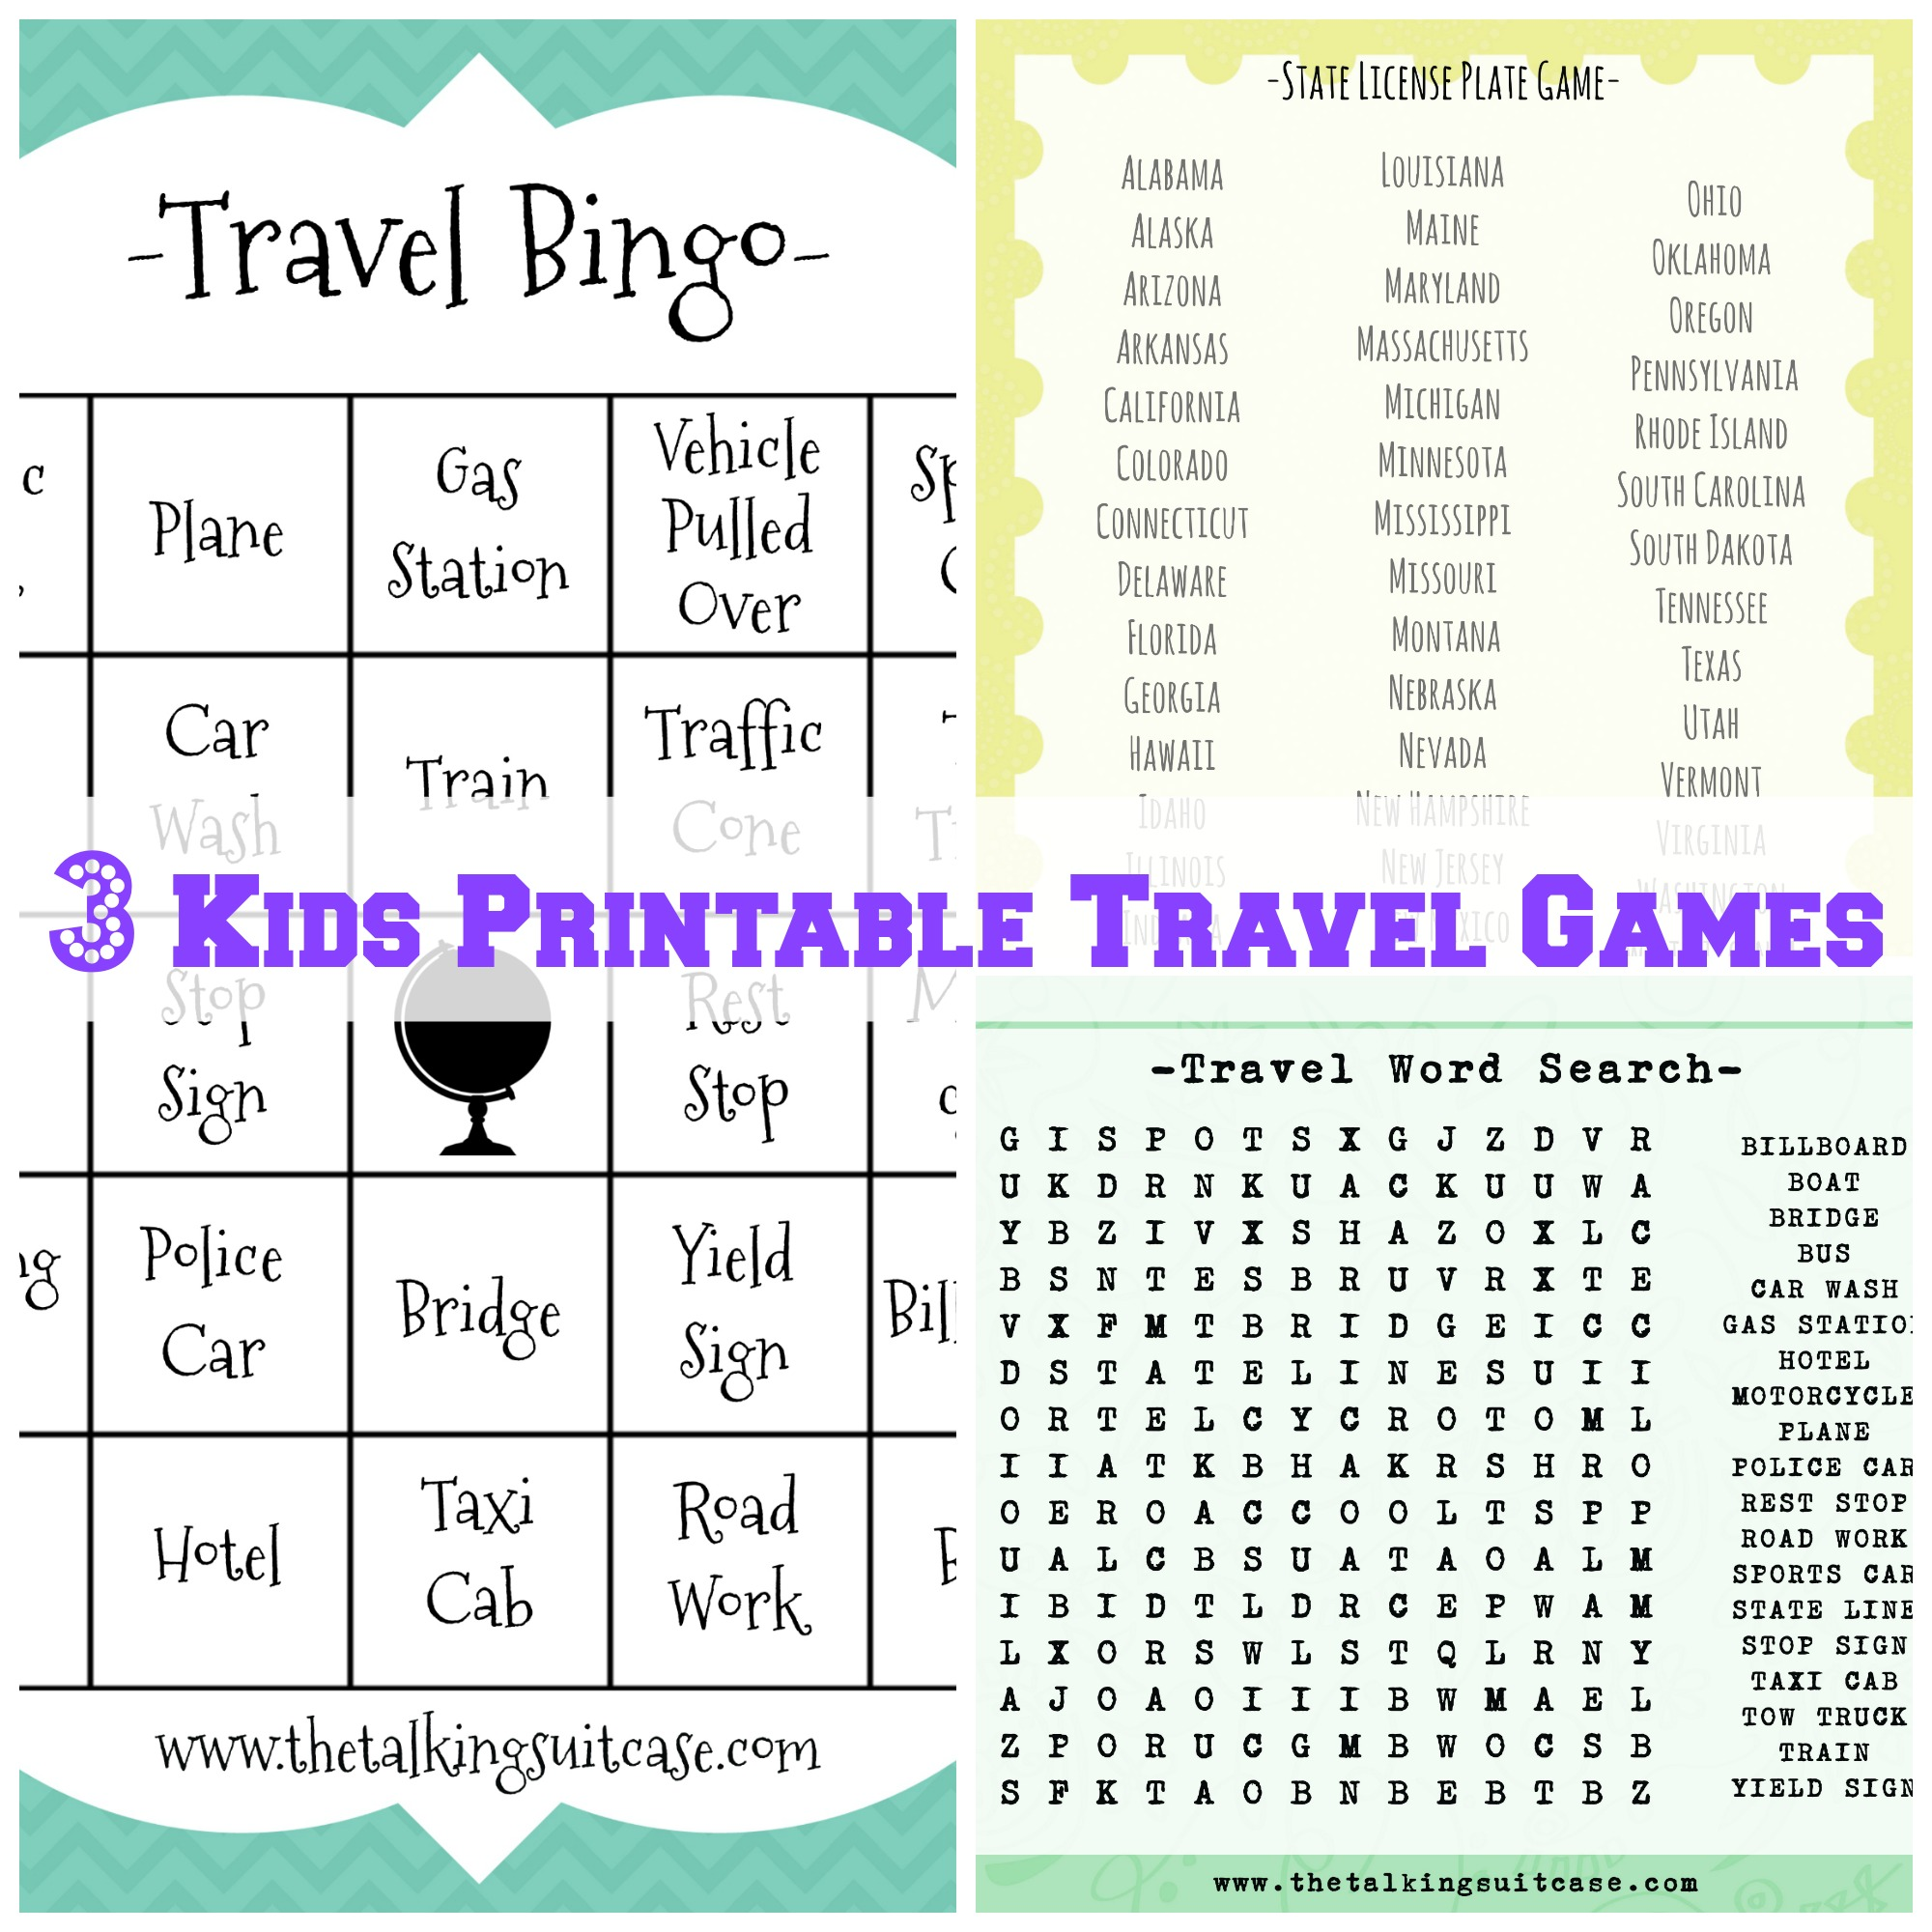 Kids Printable Travel Games I Printable Childrens Travel Games